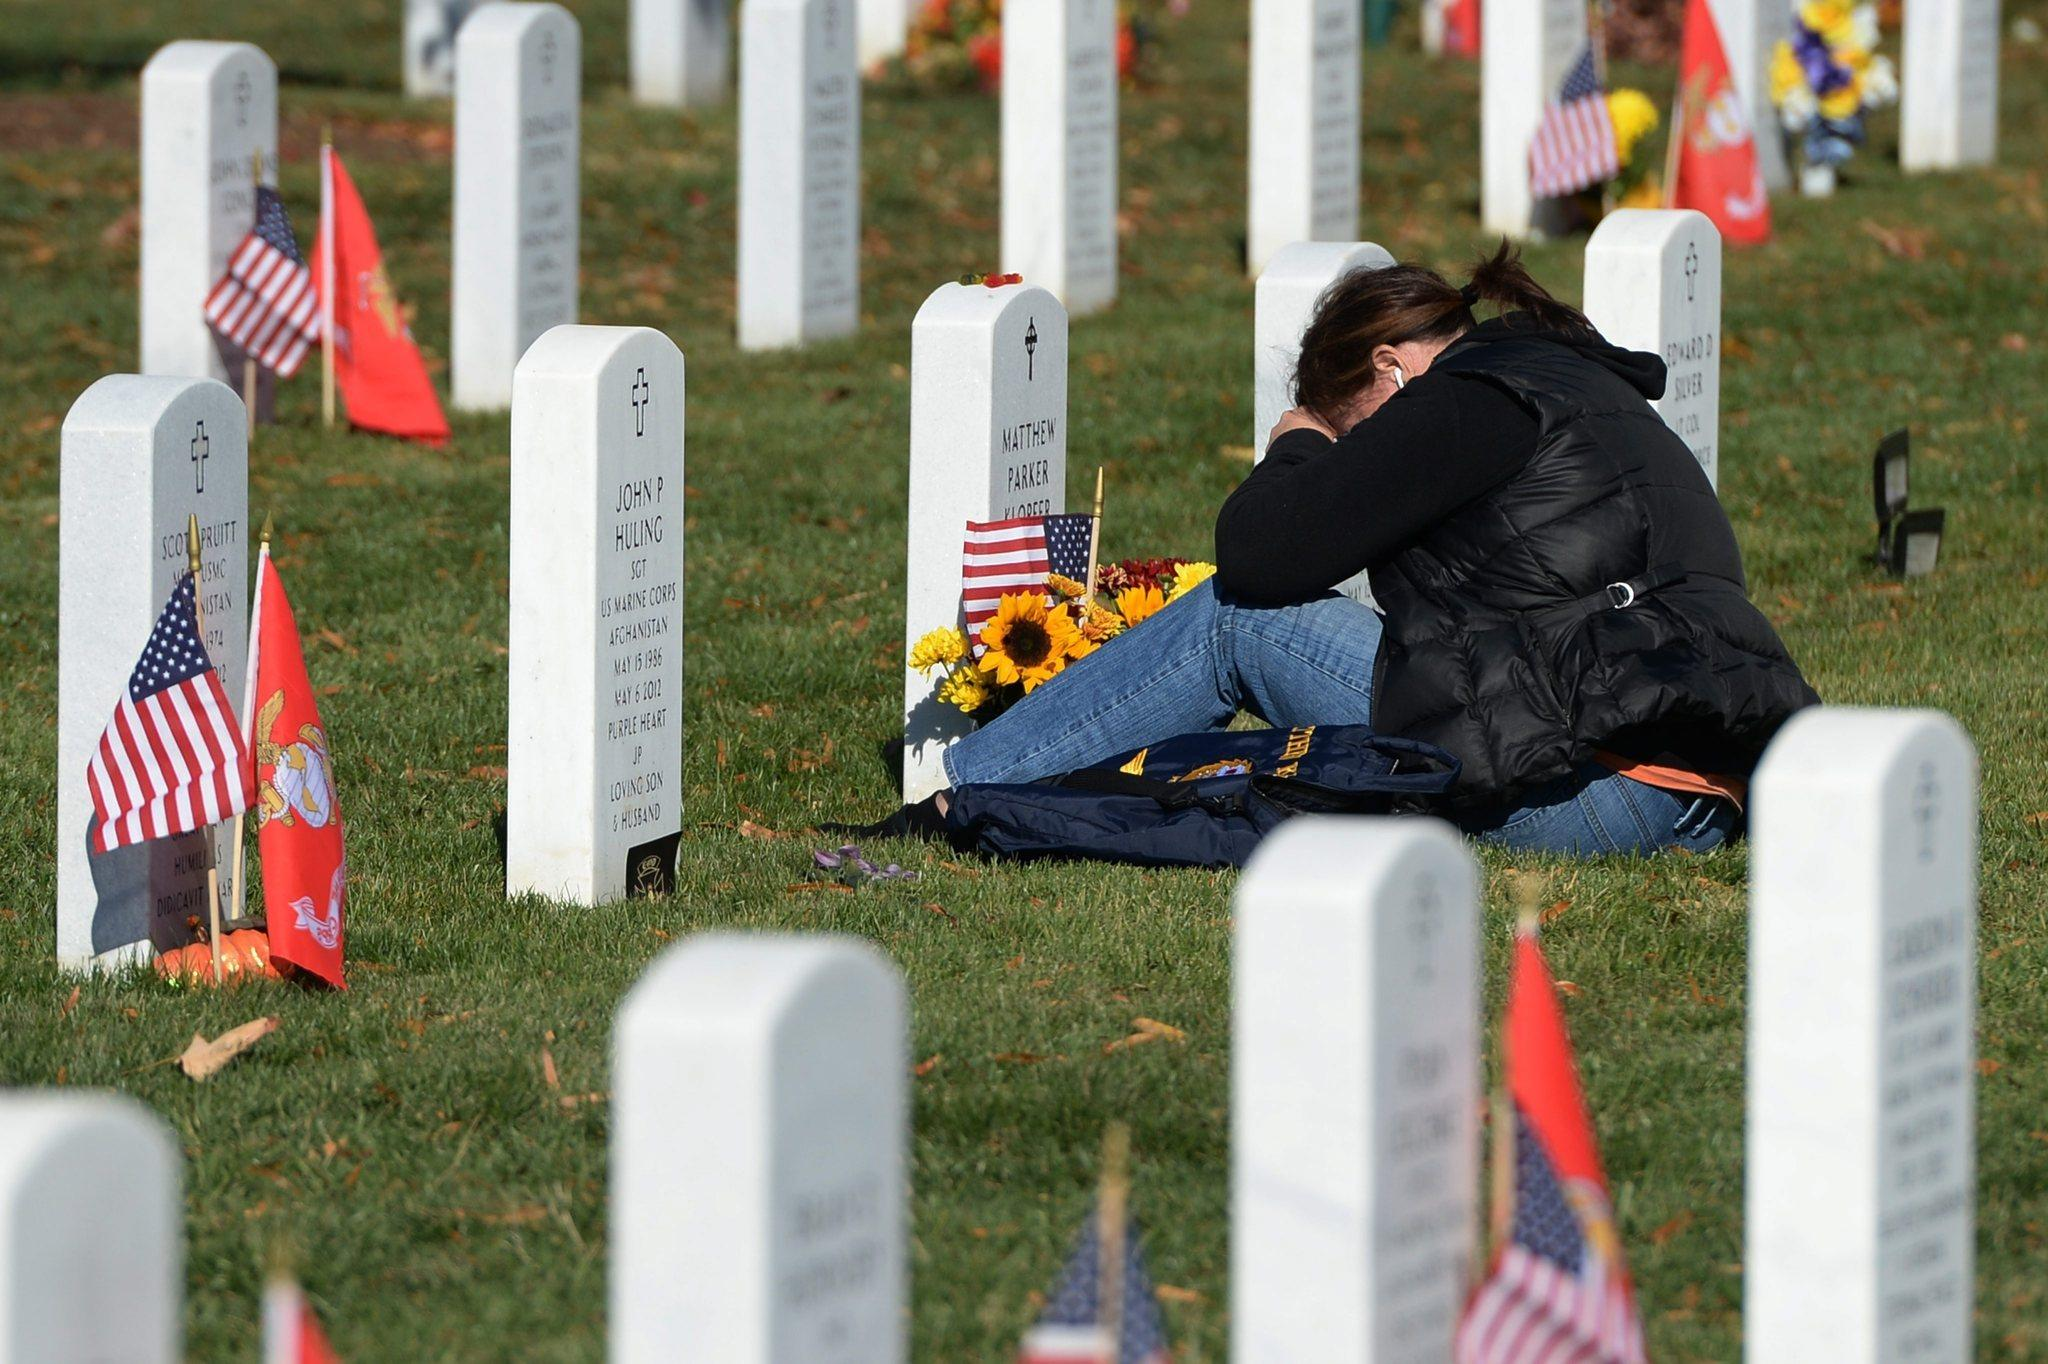 With 2,300 U.S. troop deaths over the dozen years of the war in Afghanistan, public dismay over the faraway battle now matches the height of U.S. opposition to the war in Iraq, an ABC News/Washington Post poll disclosed Friday. In this photo from Arlington National Cemetery on Veteran's Day last month, Kathy Sheehy weeps in front of the gravestone of her son, Lt. Matthew Klopfer, a naval aviator who died in June 2012.